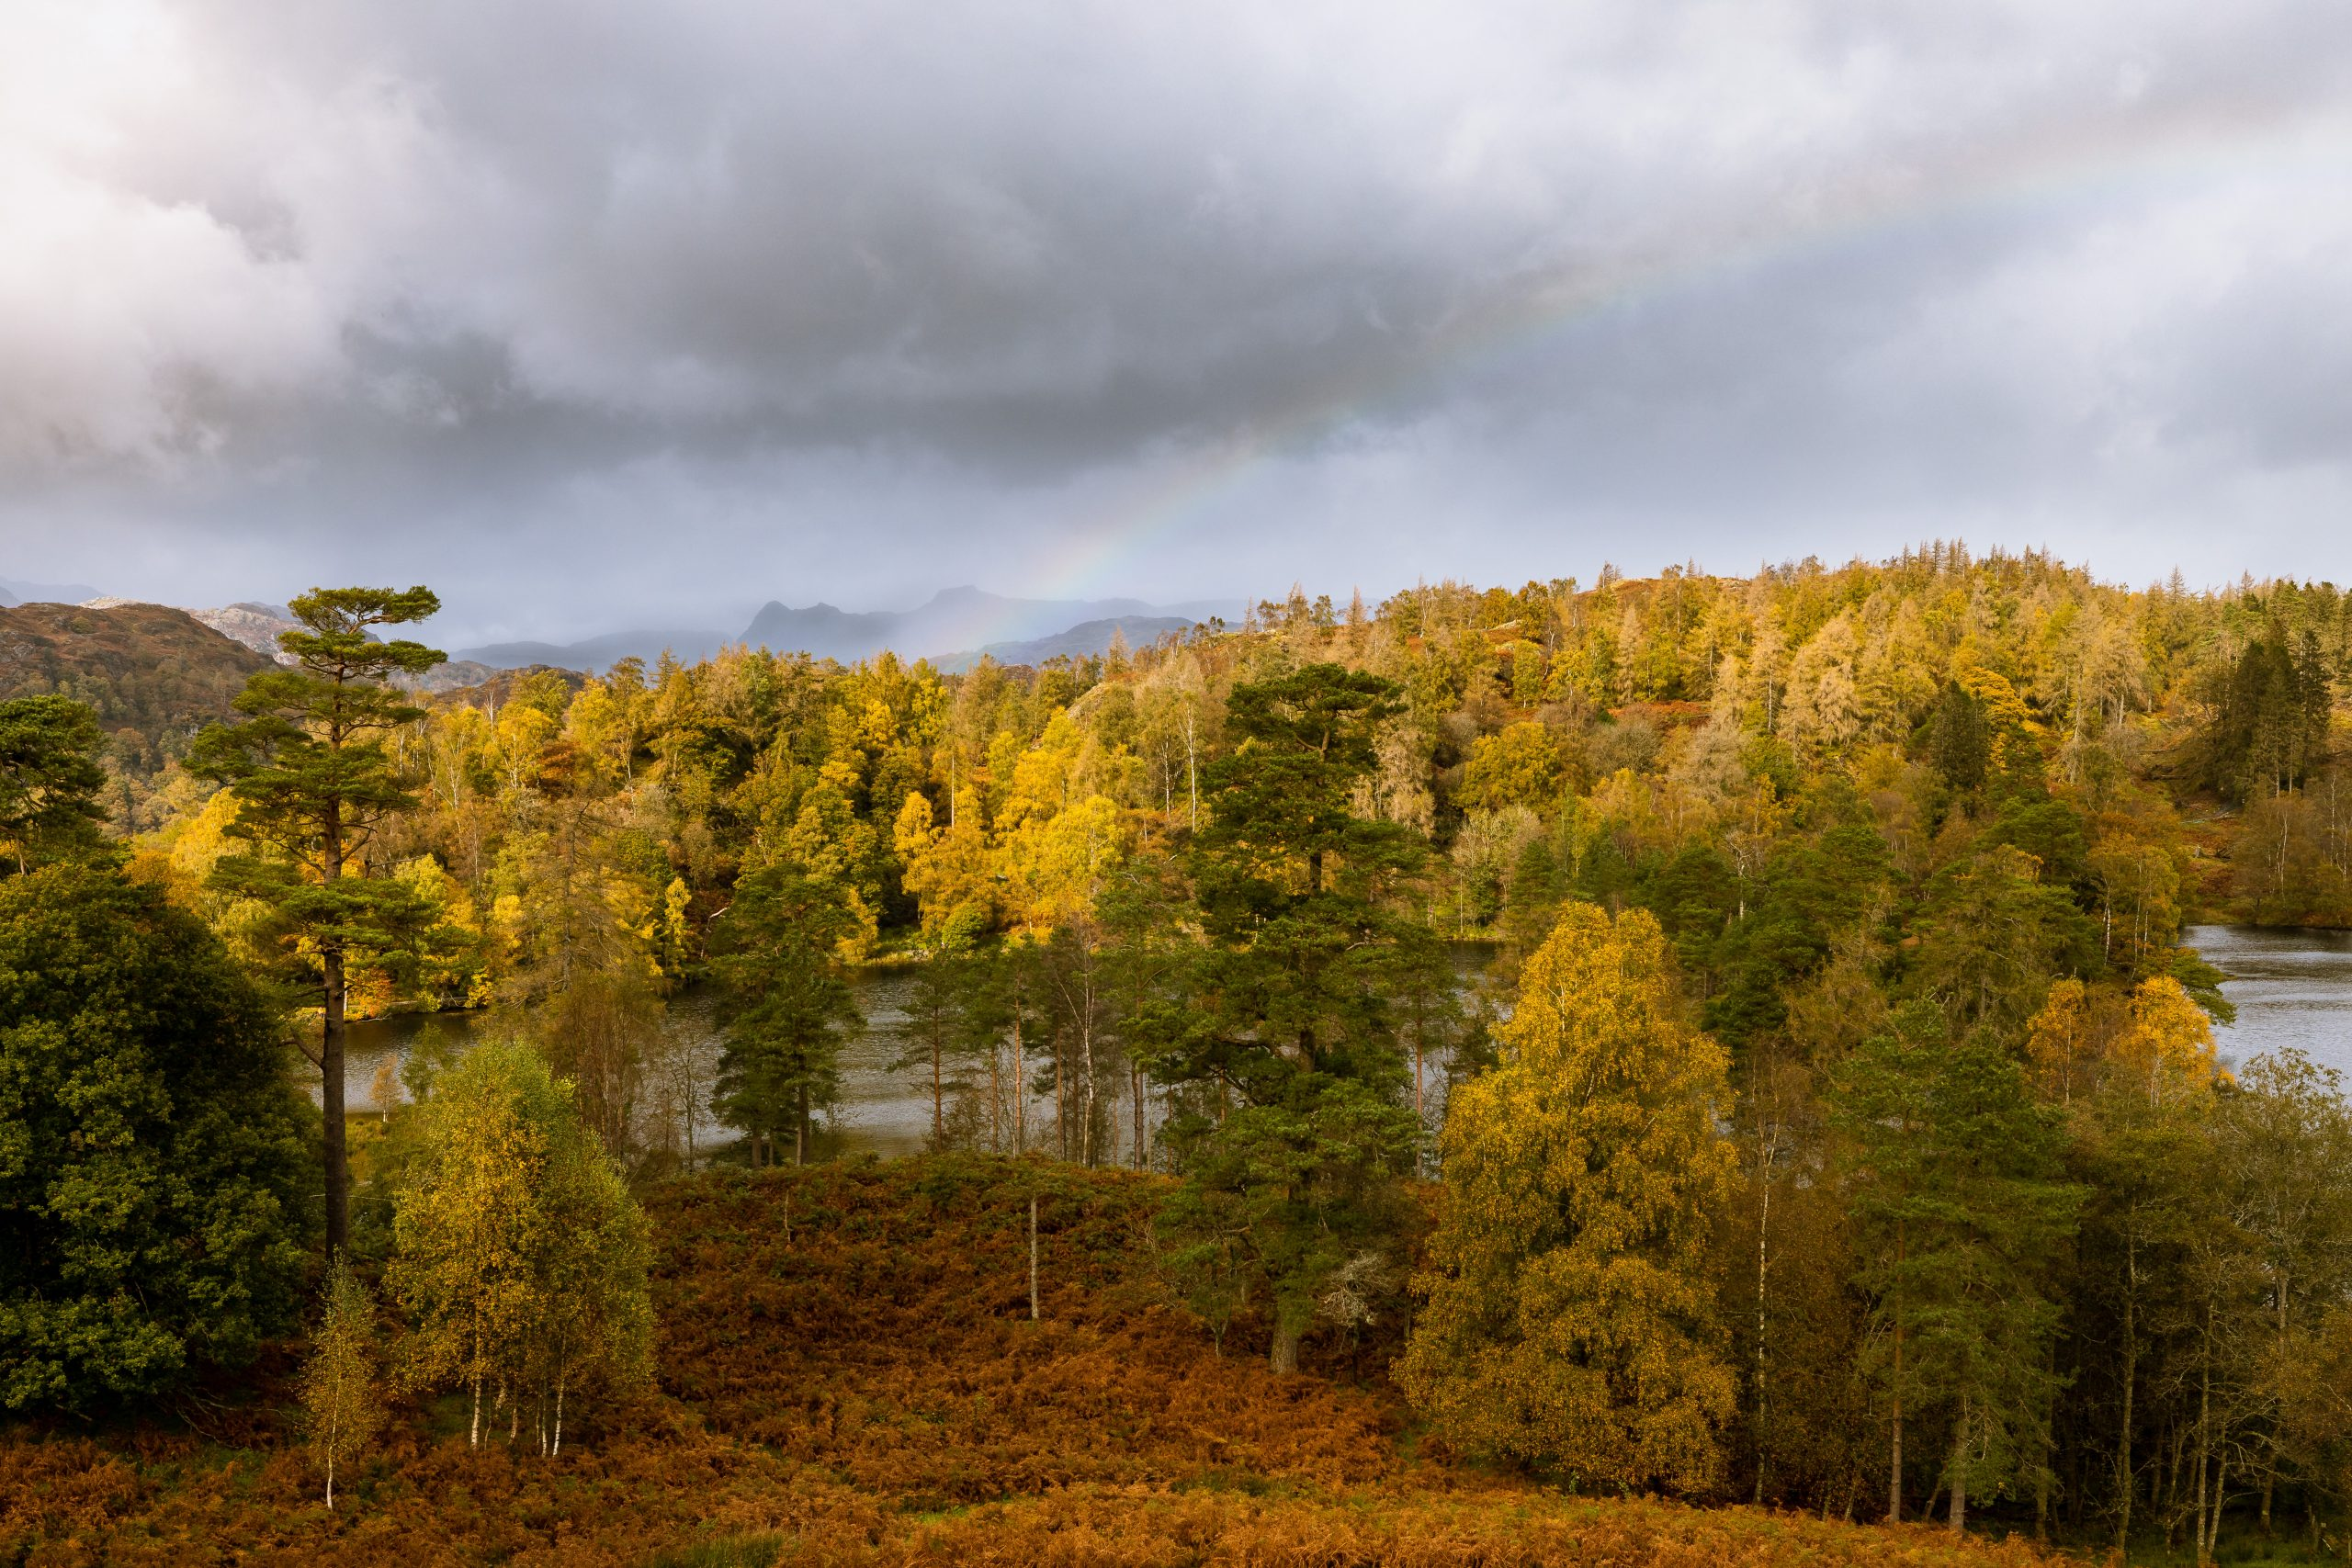 The Langdale Pikes in the autumn, highlighted by a rainbow, seen from Tarn Hows in the Lake District